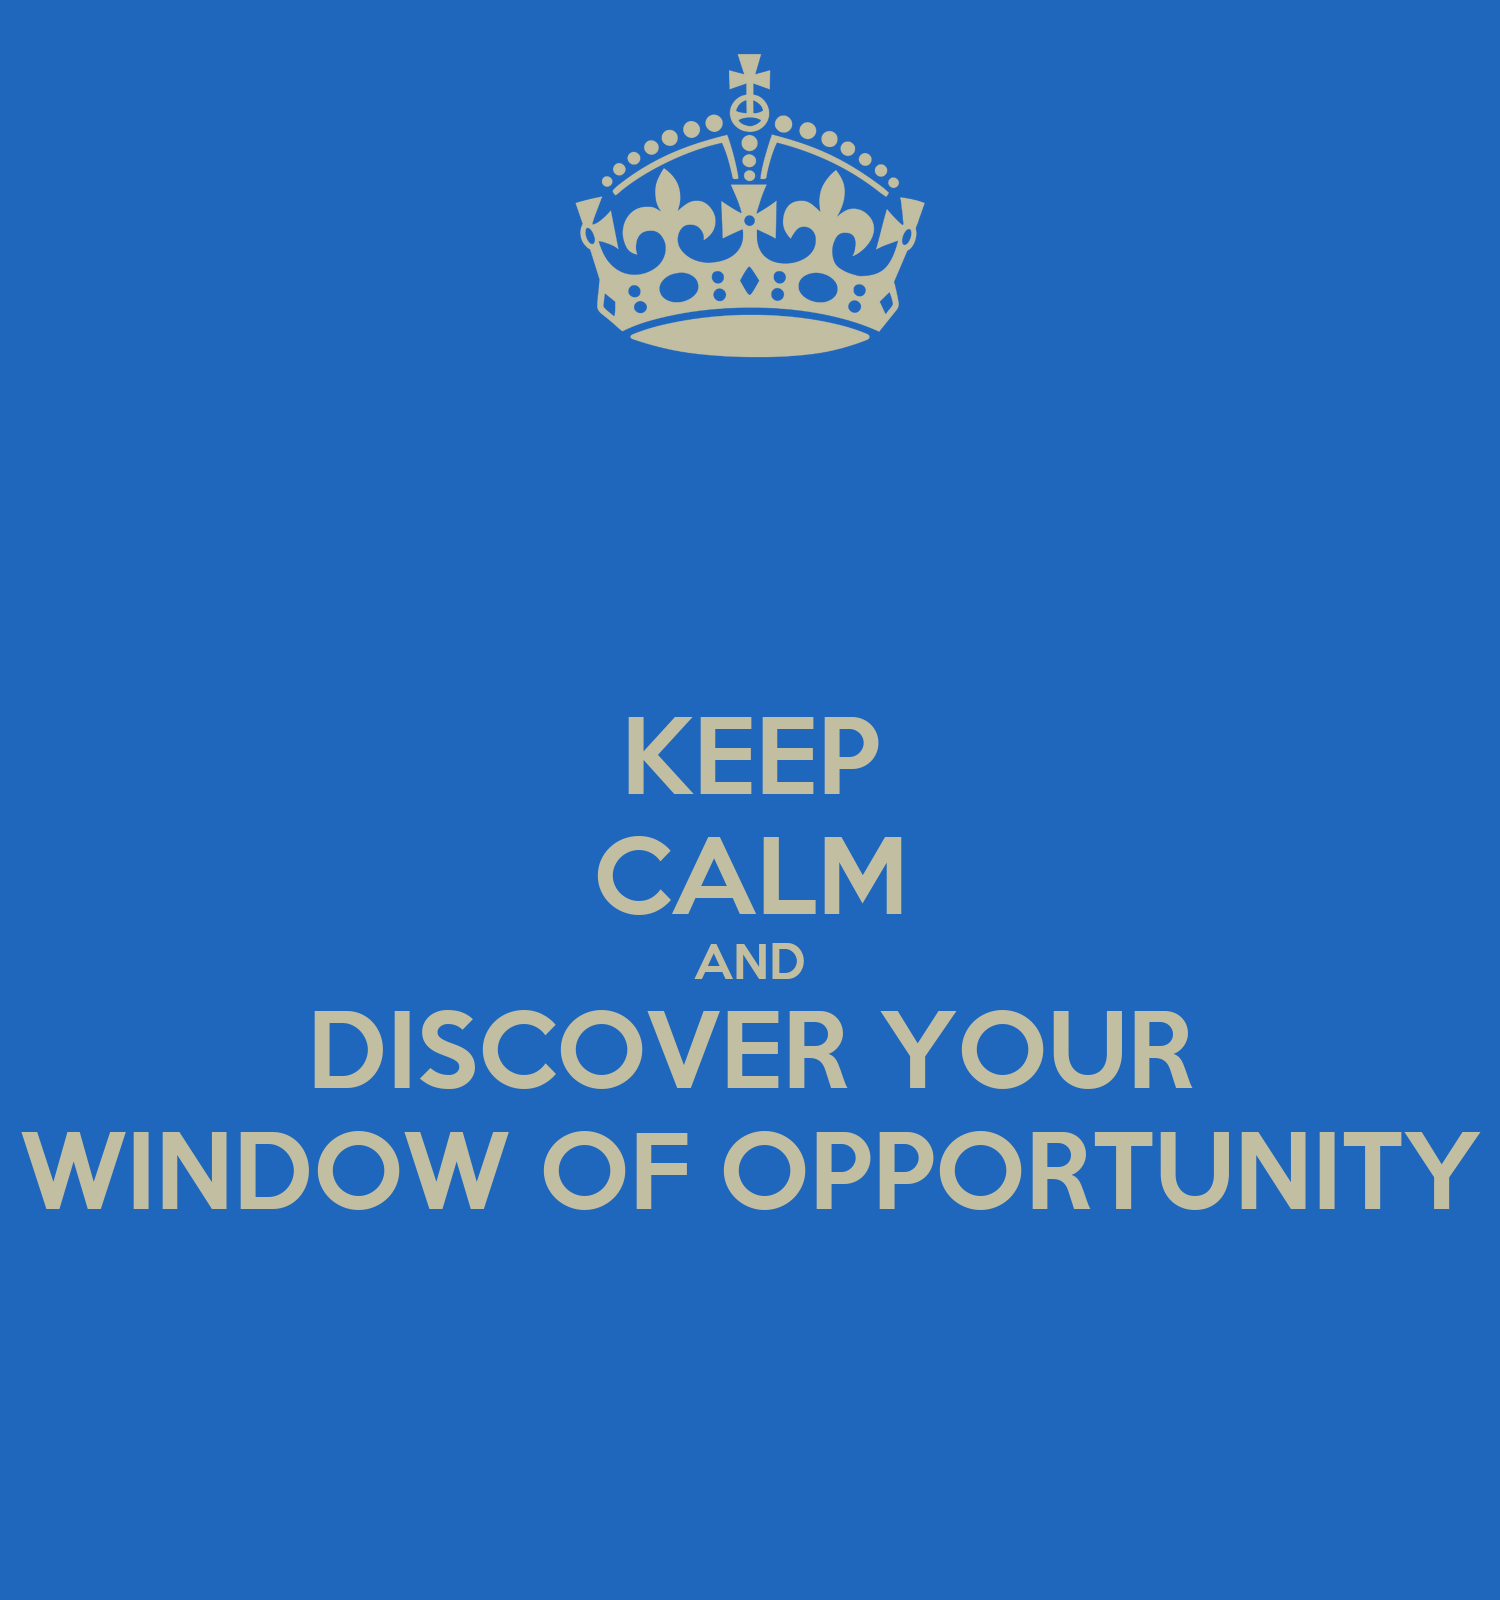 Keep calm and discover your window of opportunity poster for Window of opportunity